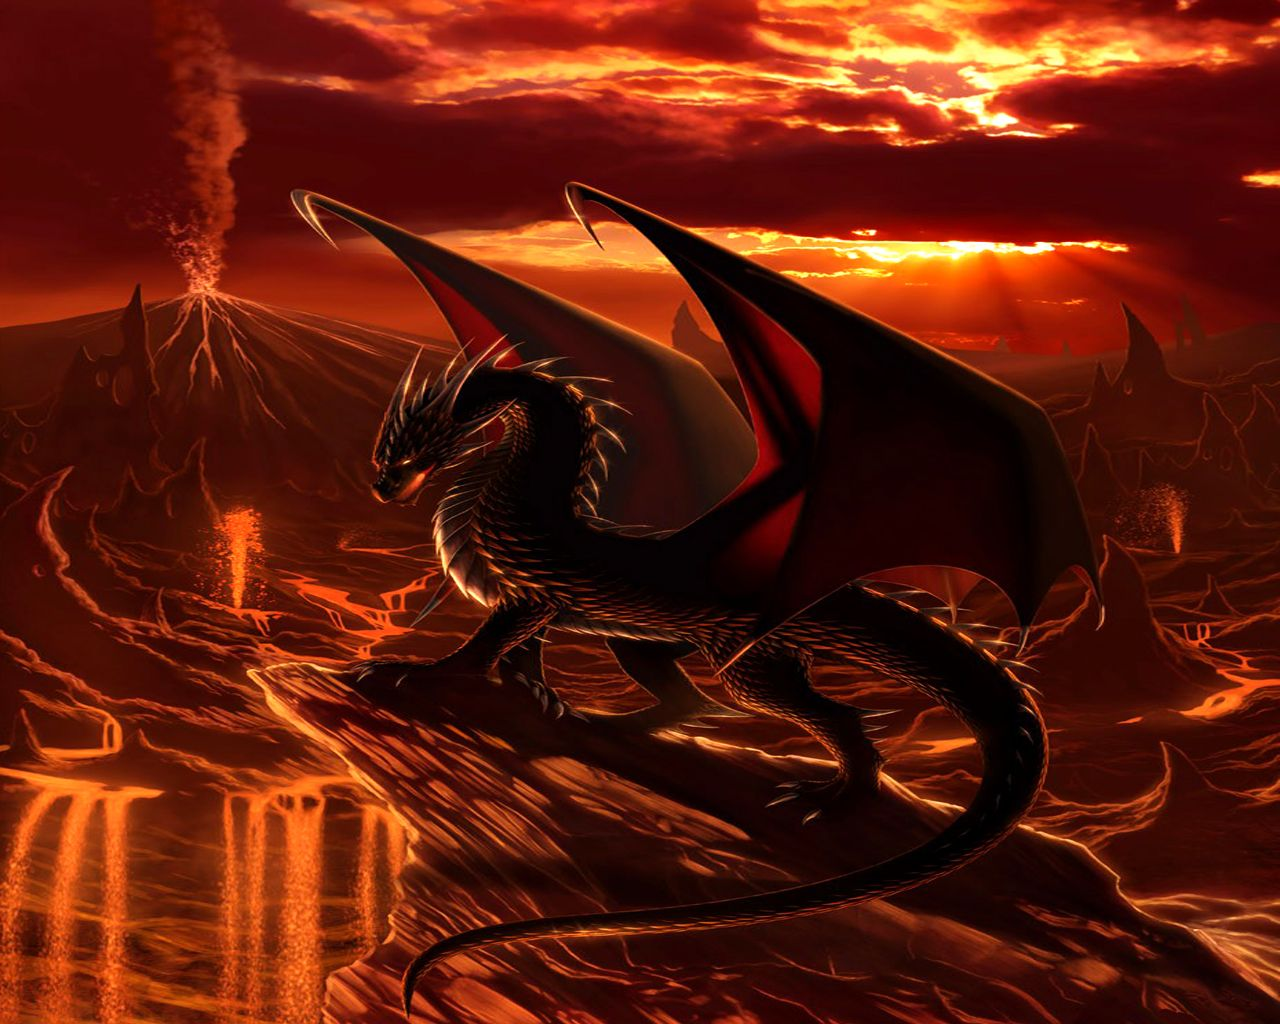 Fire Dragon Wallpaper Background with High Resolution Wallpaper ...